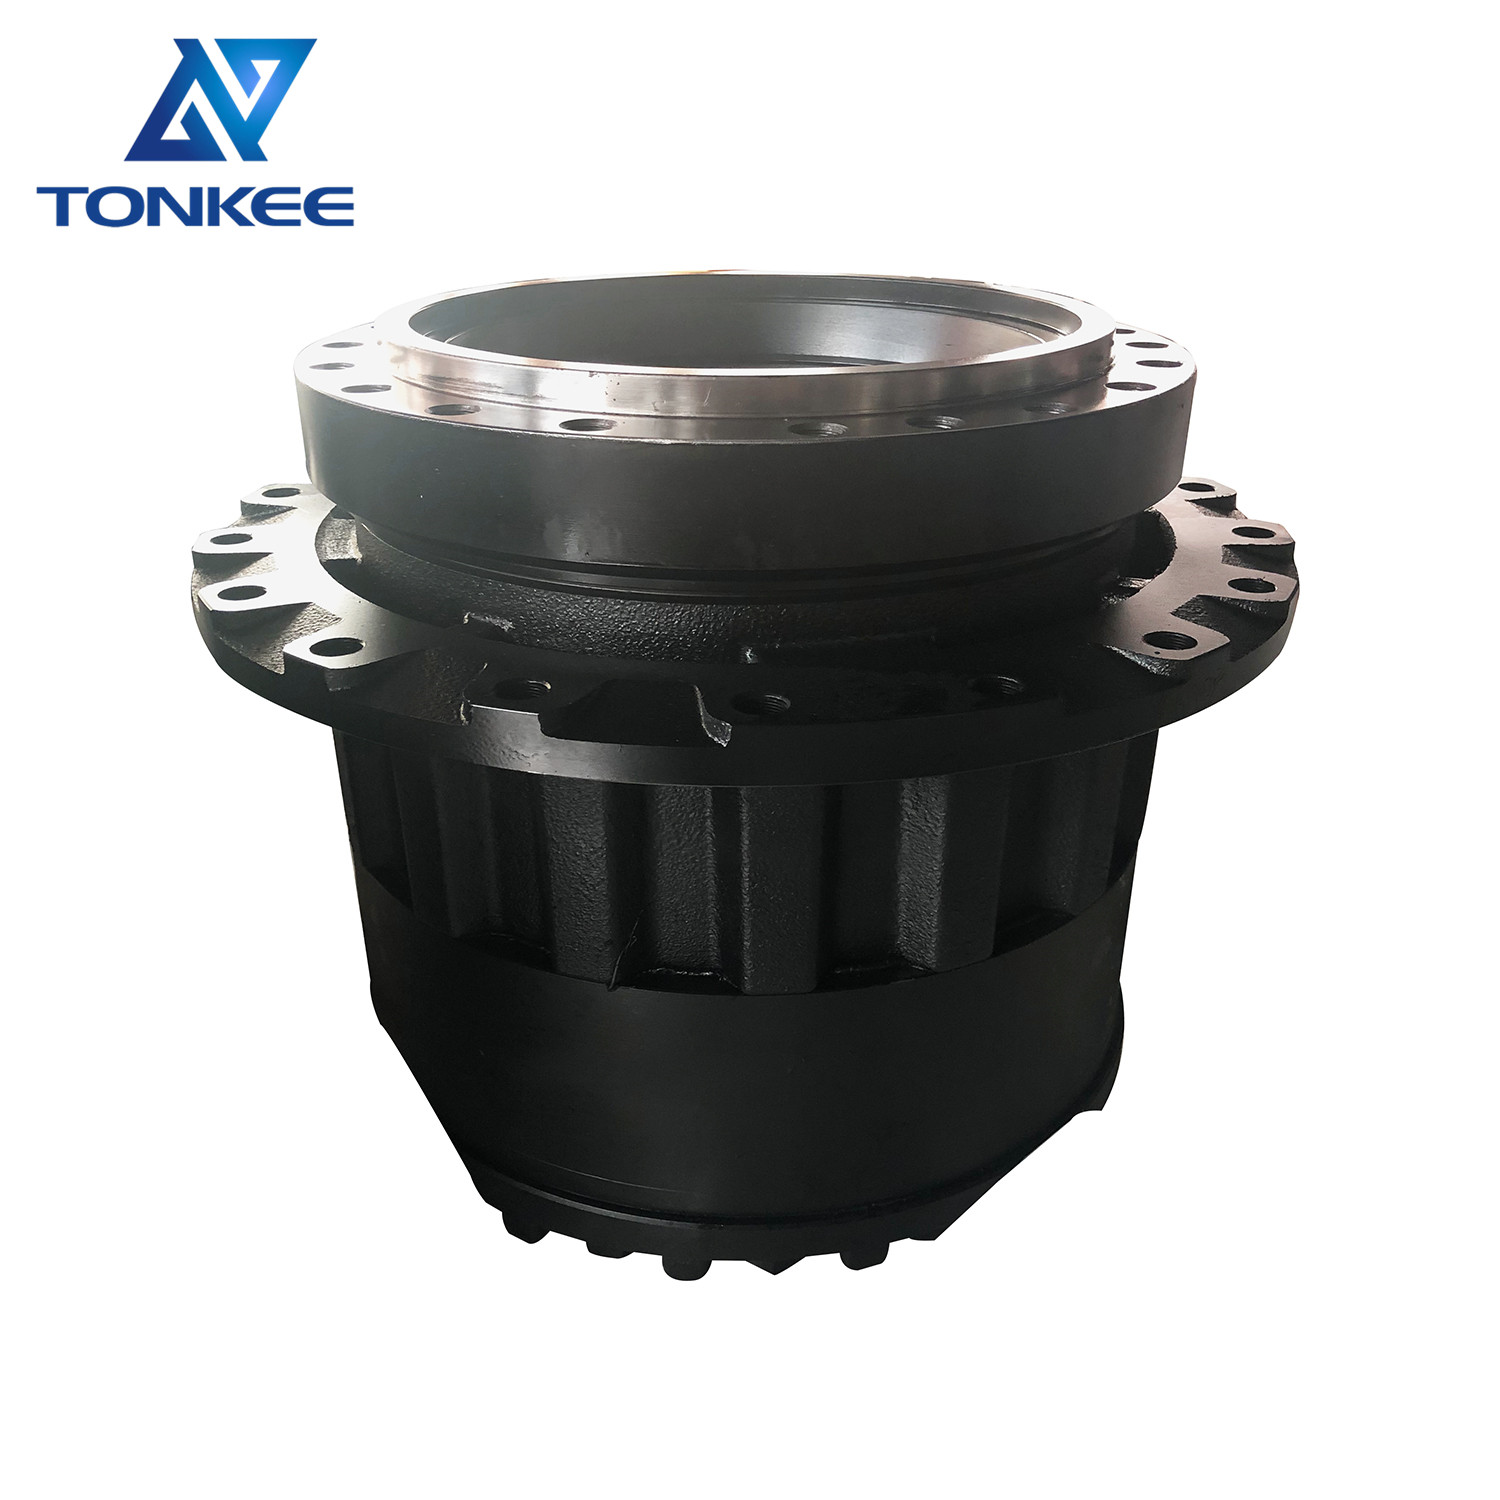 2276103 1994521 267-6796 333-2909 E325C E325D Travel Reduction Gear 325D Travel Reducer 325C Travel Gearbox